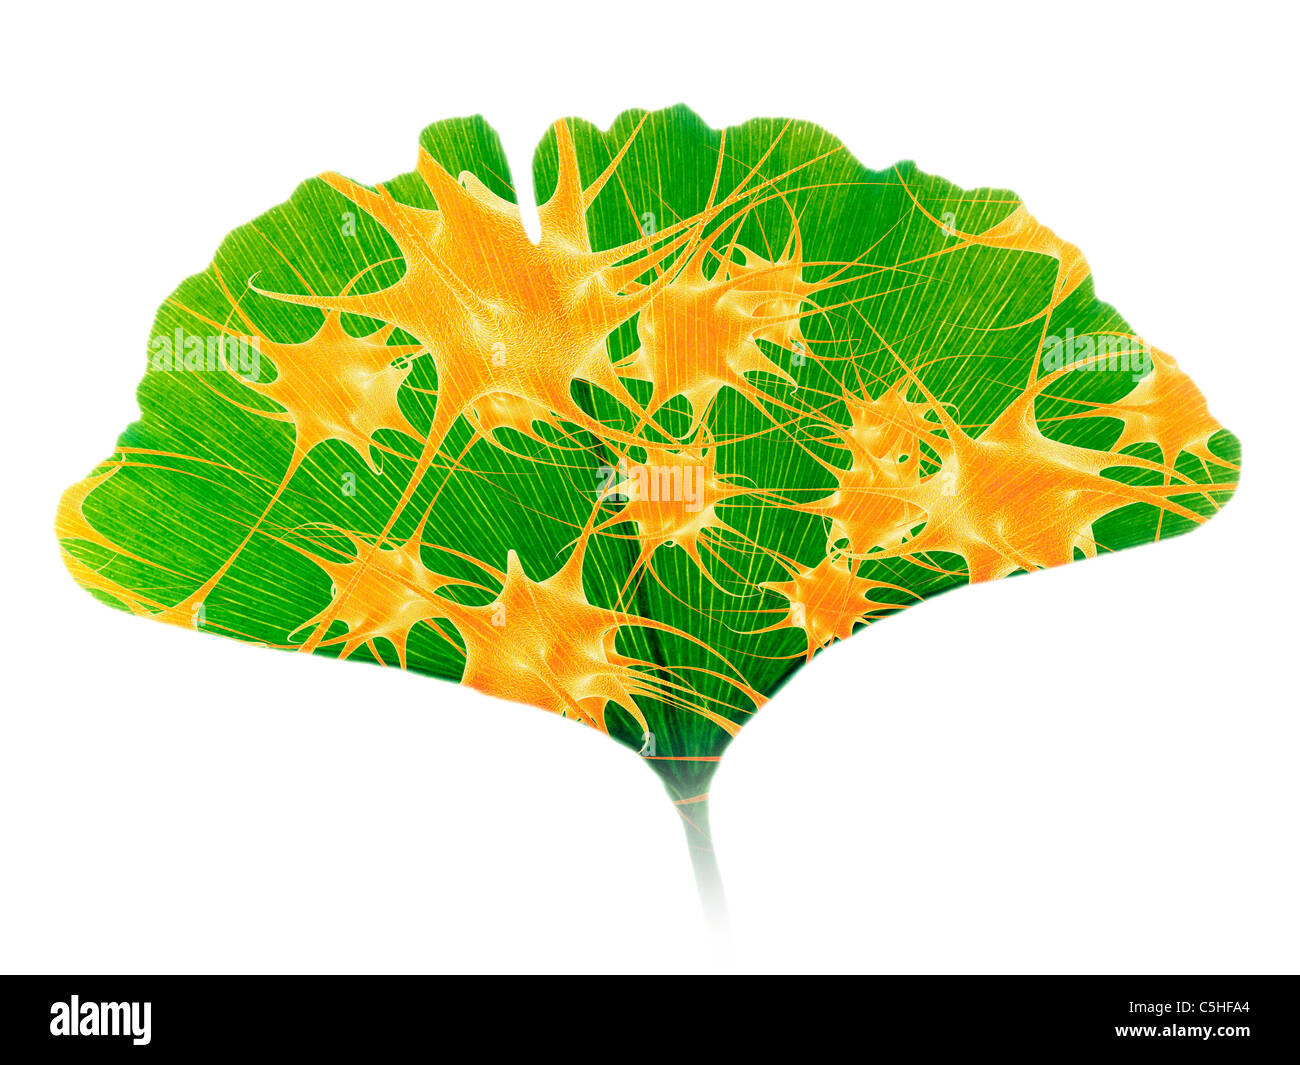 Ginkgo and nerve cells - Stock Image